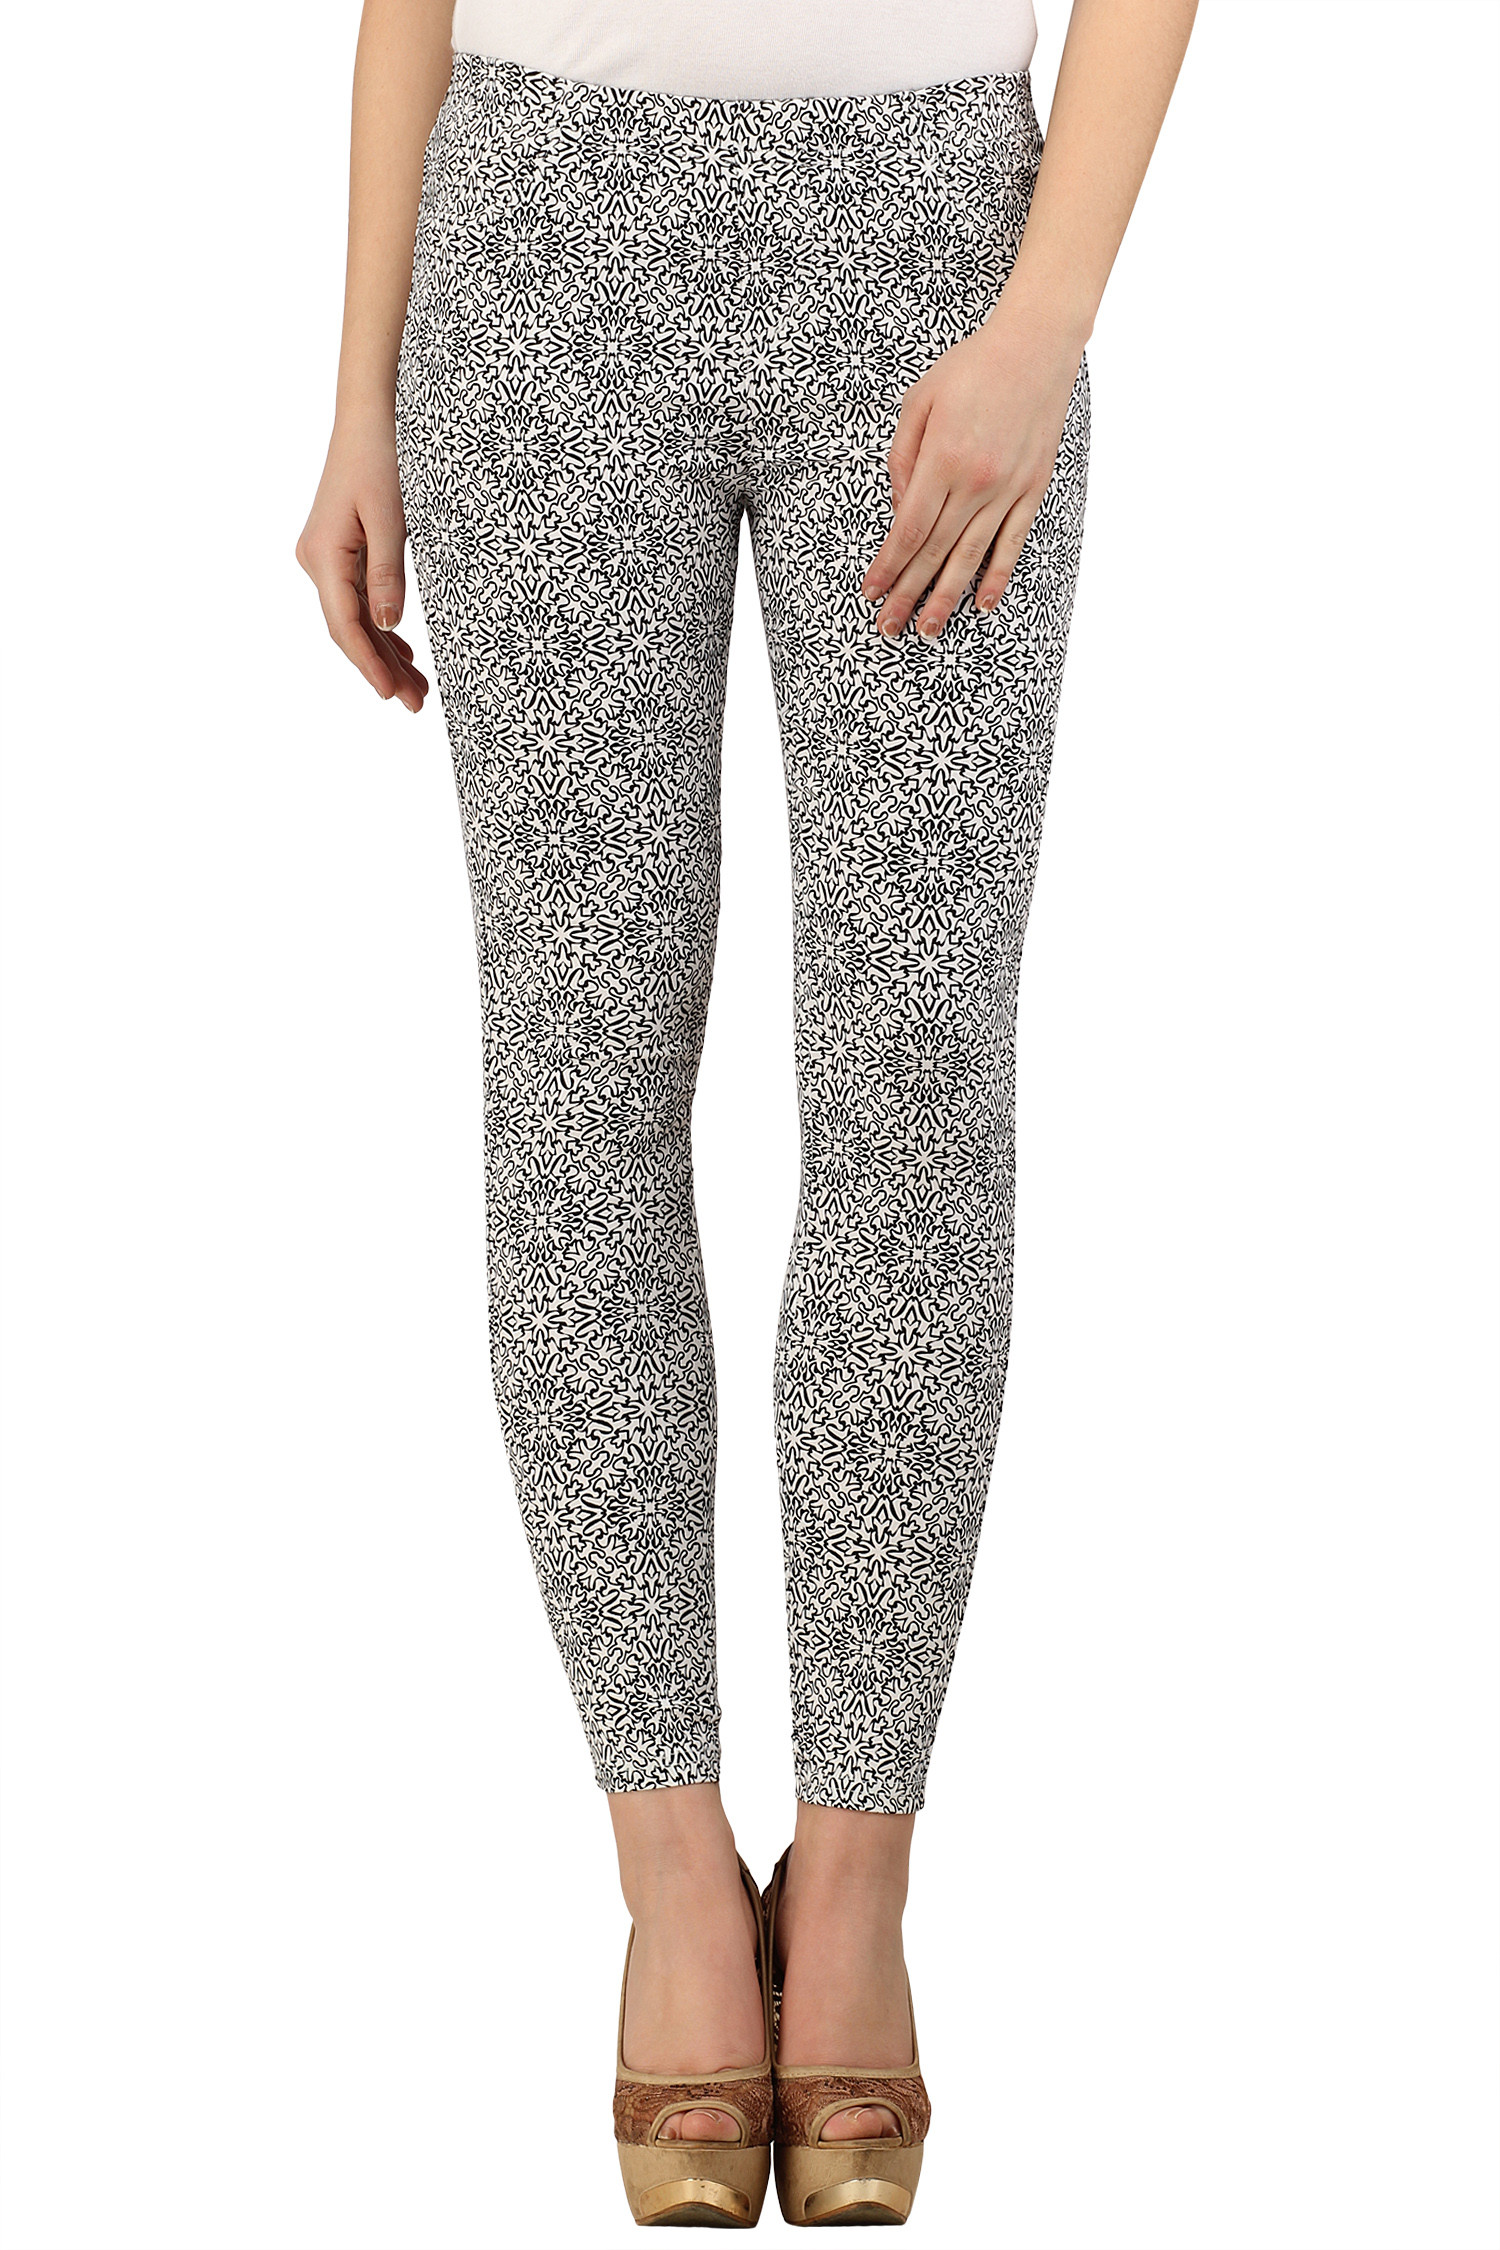 XPose Womens White Jeggings